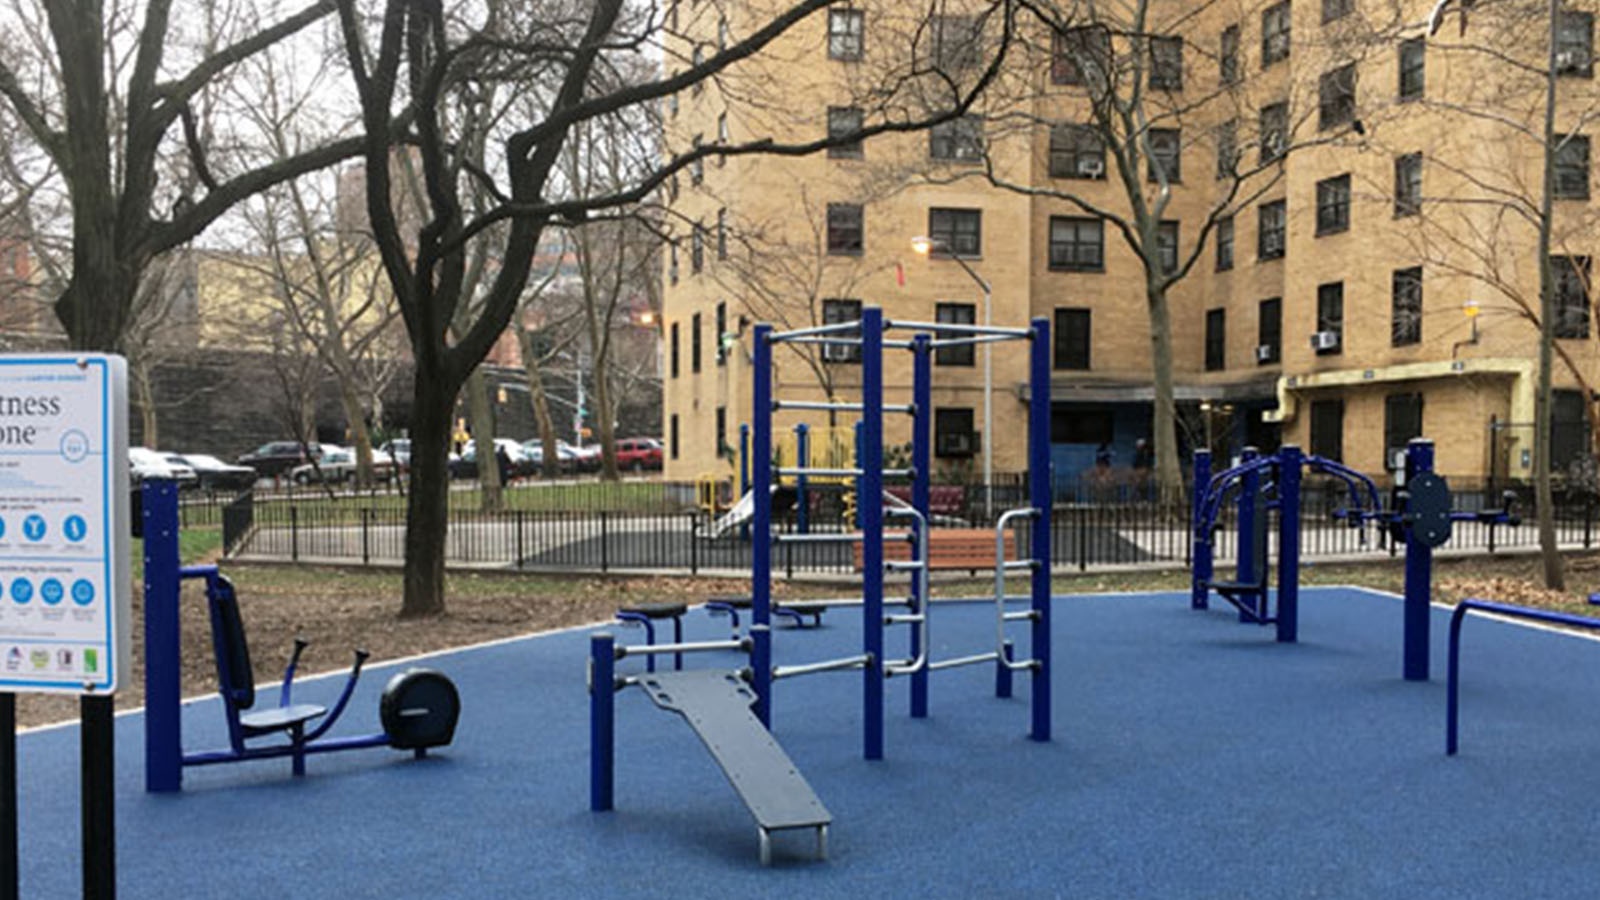 Image of a NYC playground